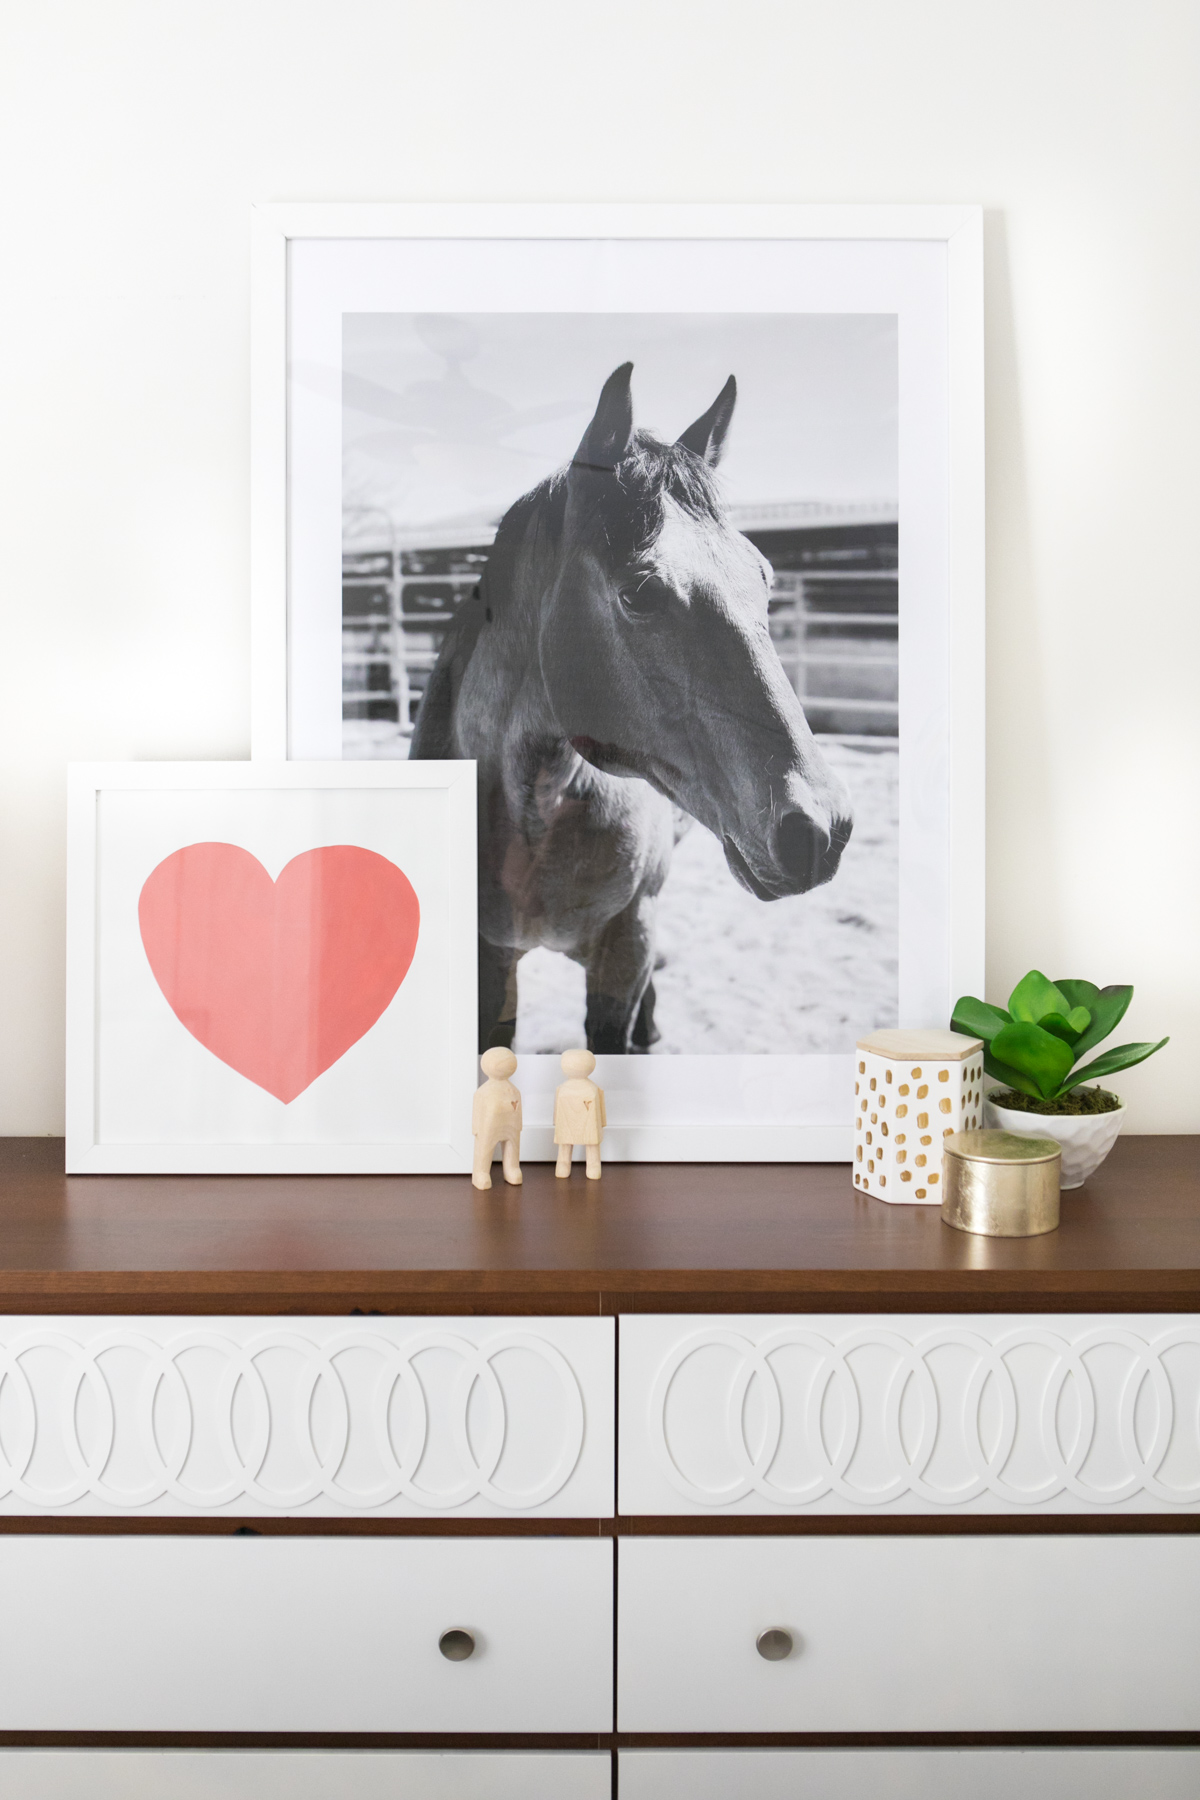 Use @devinecolor paint to paint a large heart on poster board. Get photos printed as engineer prints for cheap, large art.